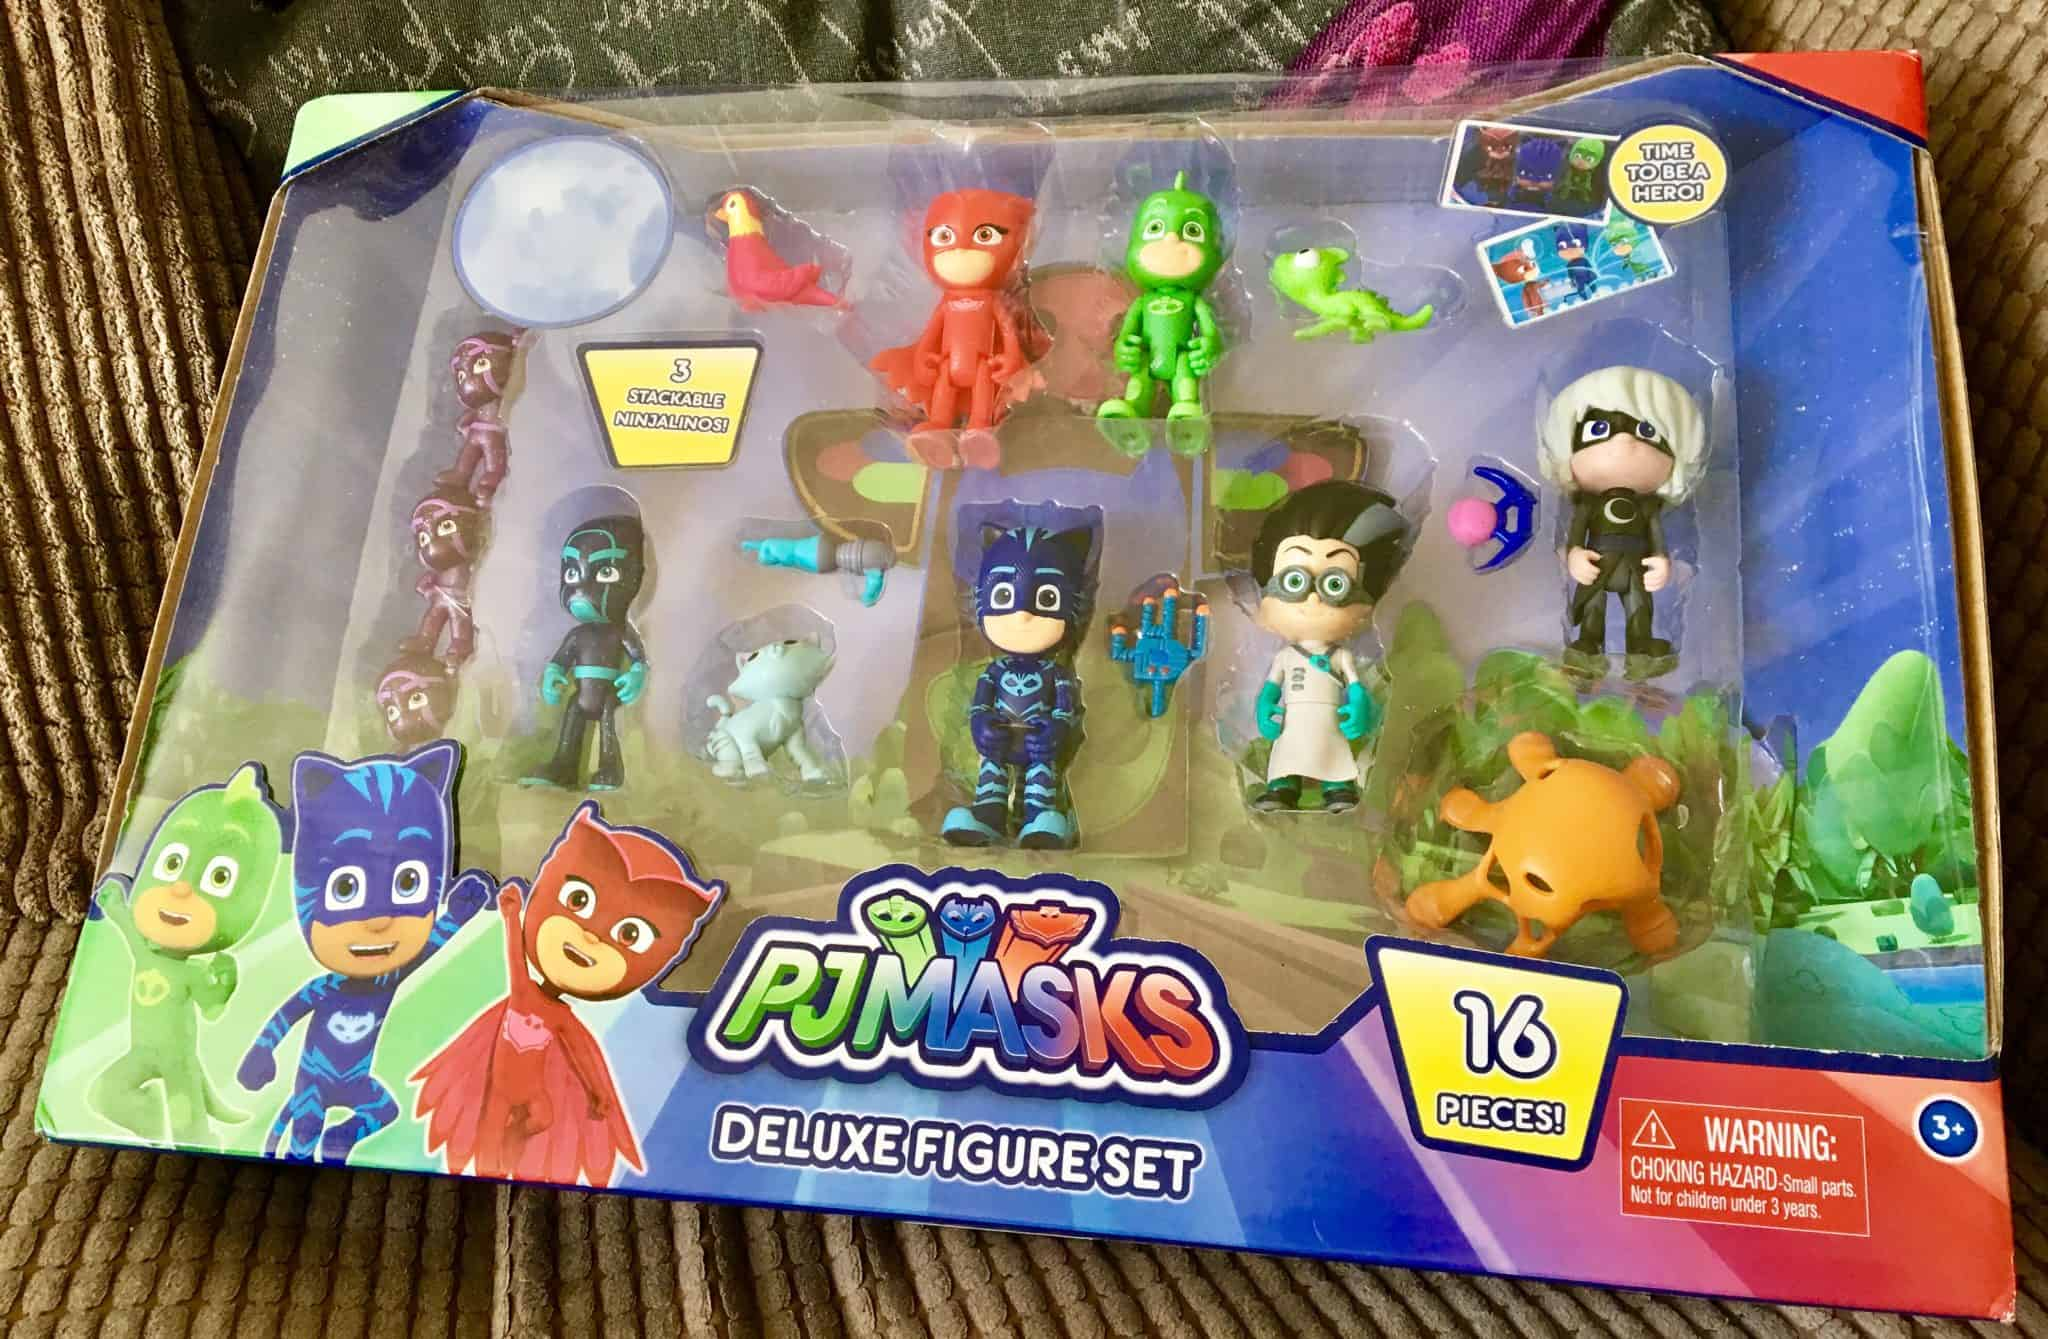 PJ Masks Deluxe 16 Figure Pack Playset Review